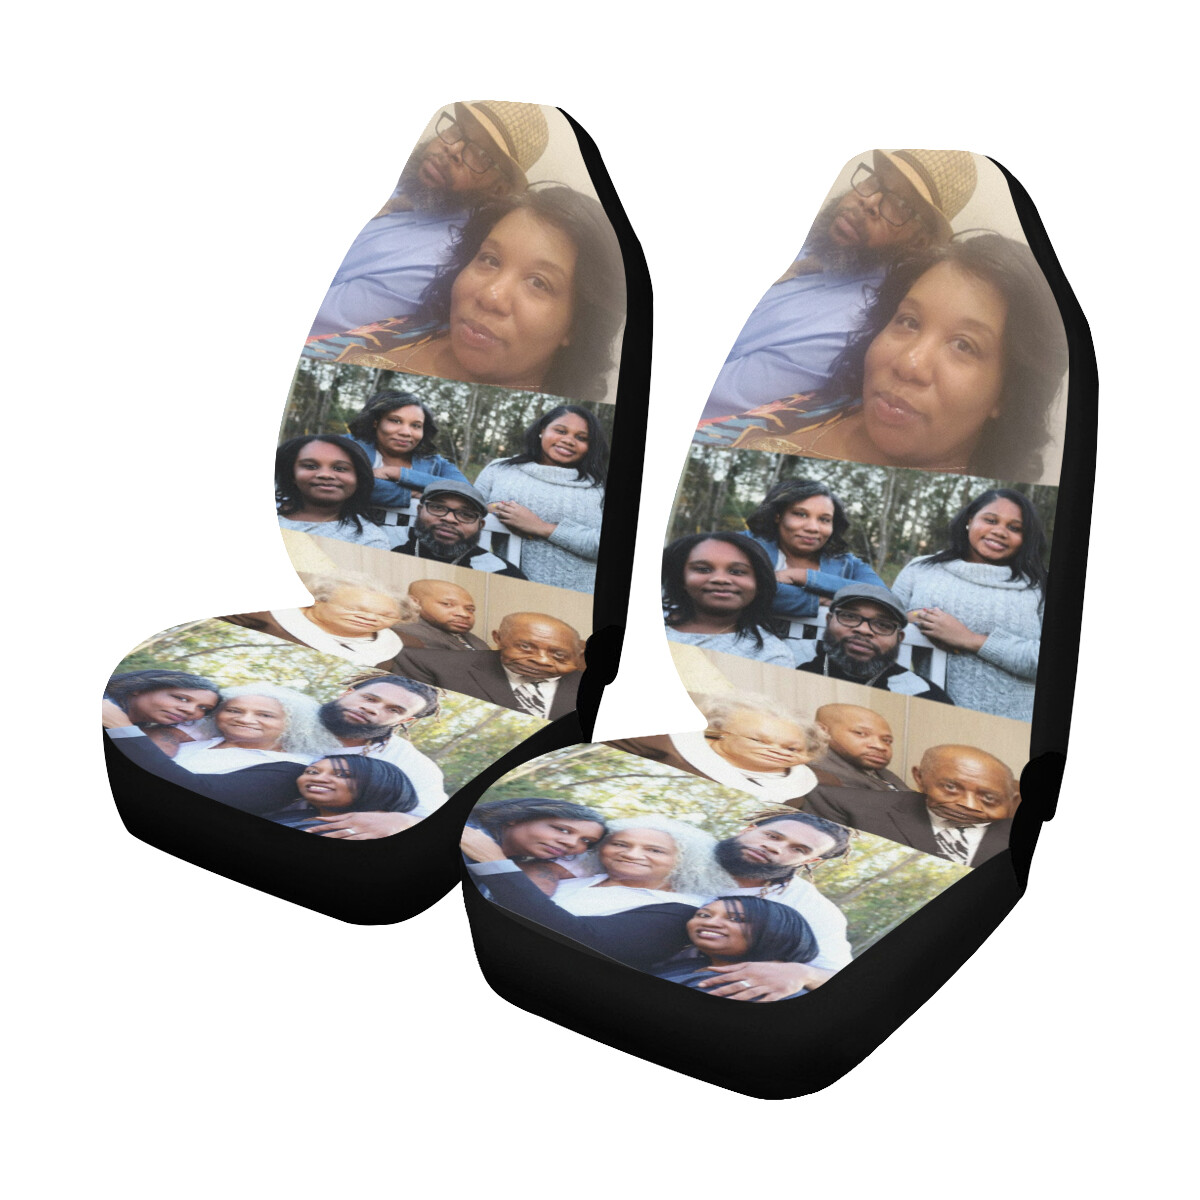 Car Seat Covers Whole Seat (Set of 2)